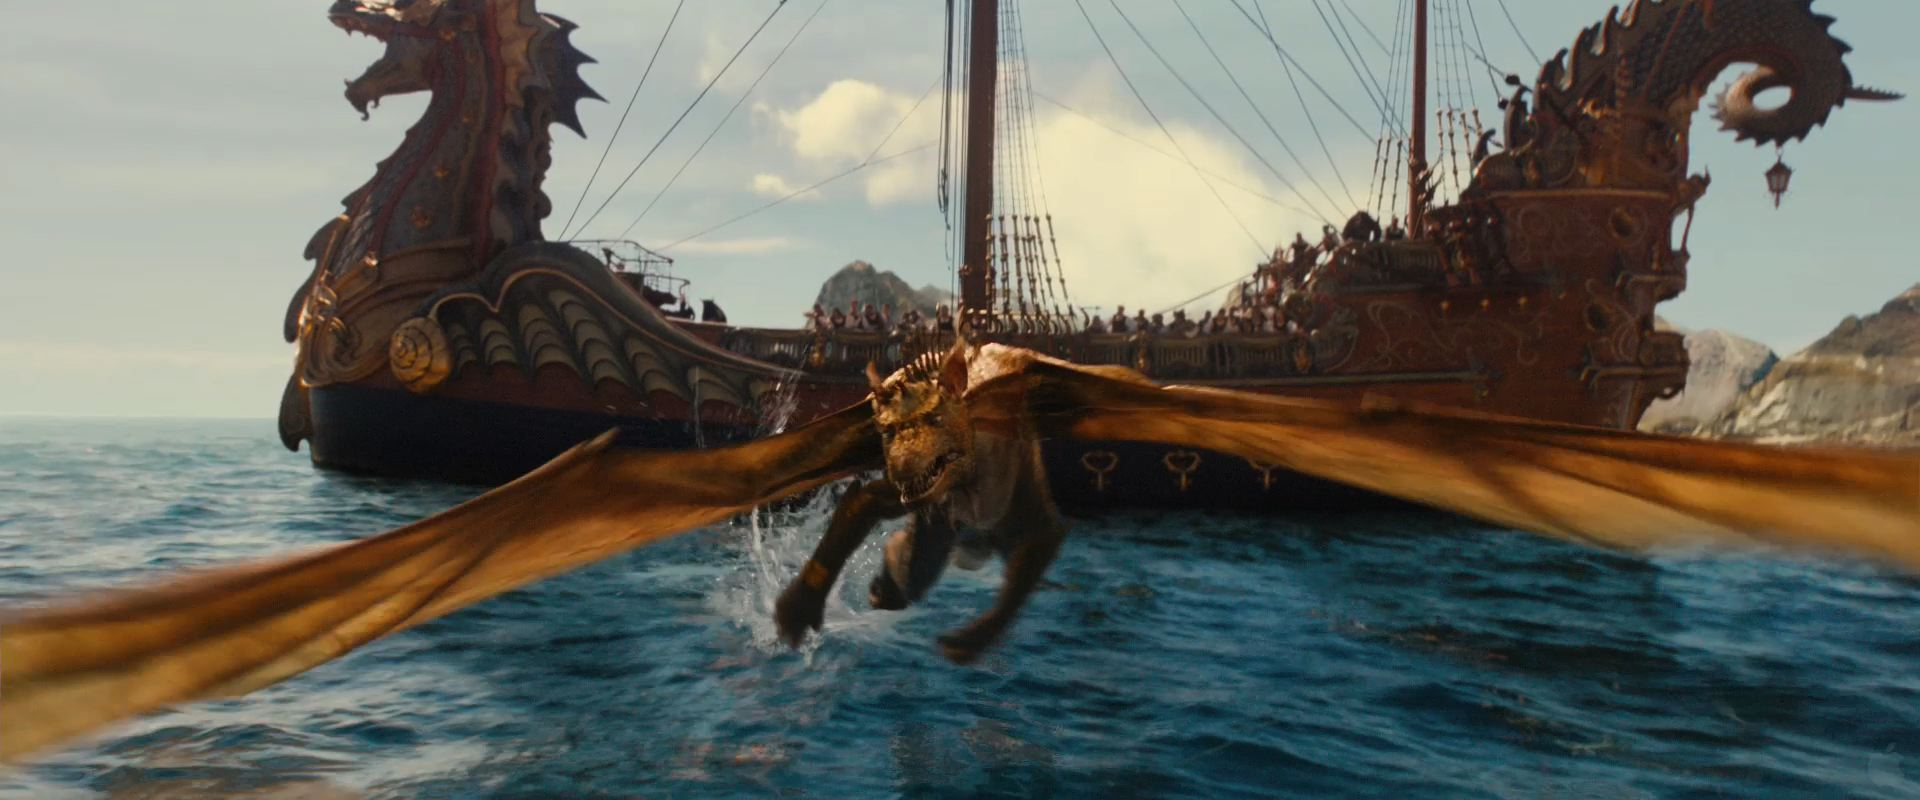 1920x800 - The Chronicles of Narnia: The Voyage of the Dawn Treader Wallpapers 30